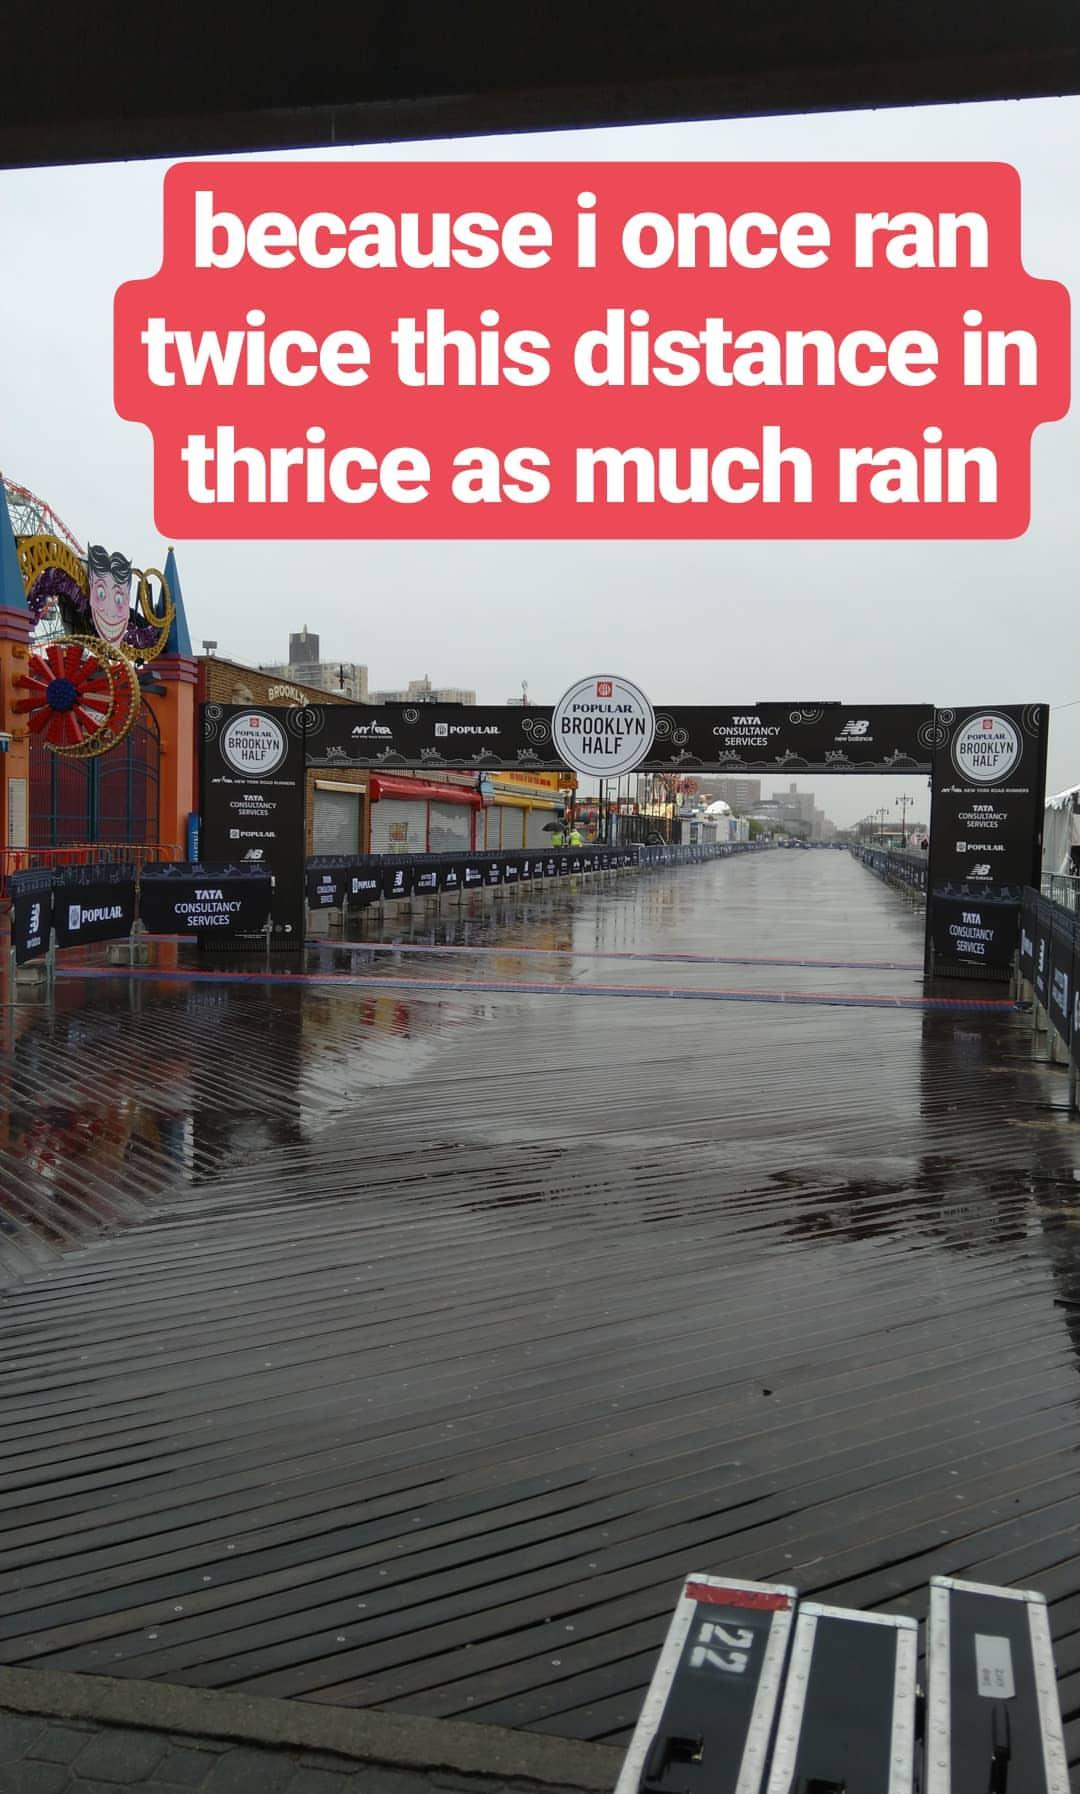 Photo from an Instagram story at the finish of the 2018 Popular® Brooklyn Half